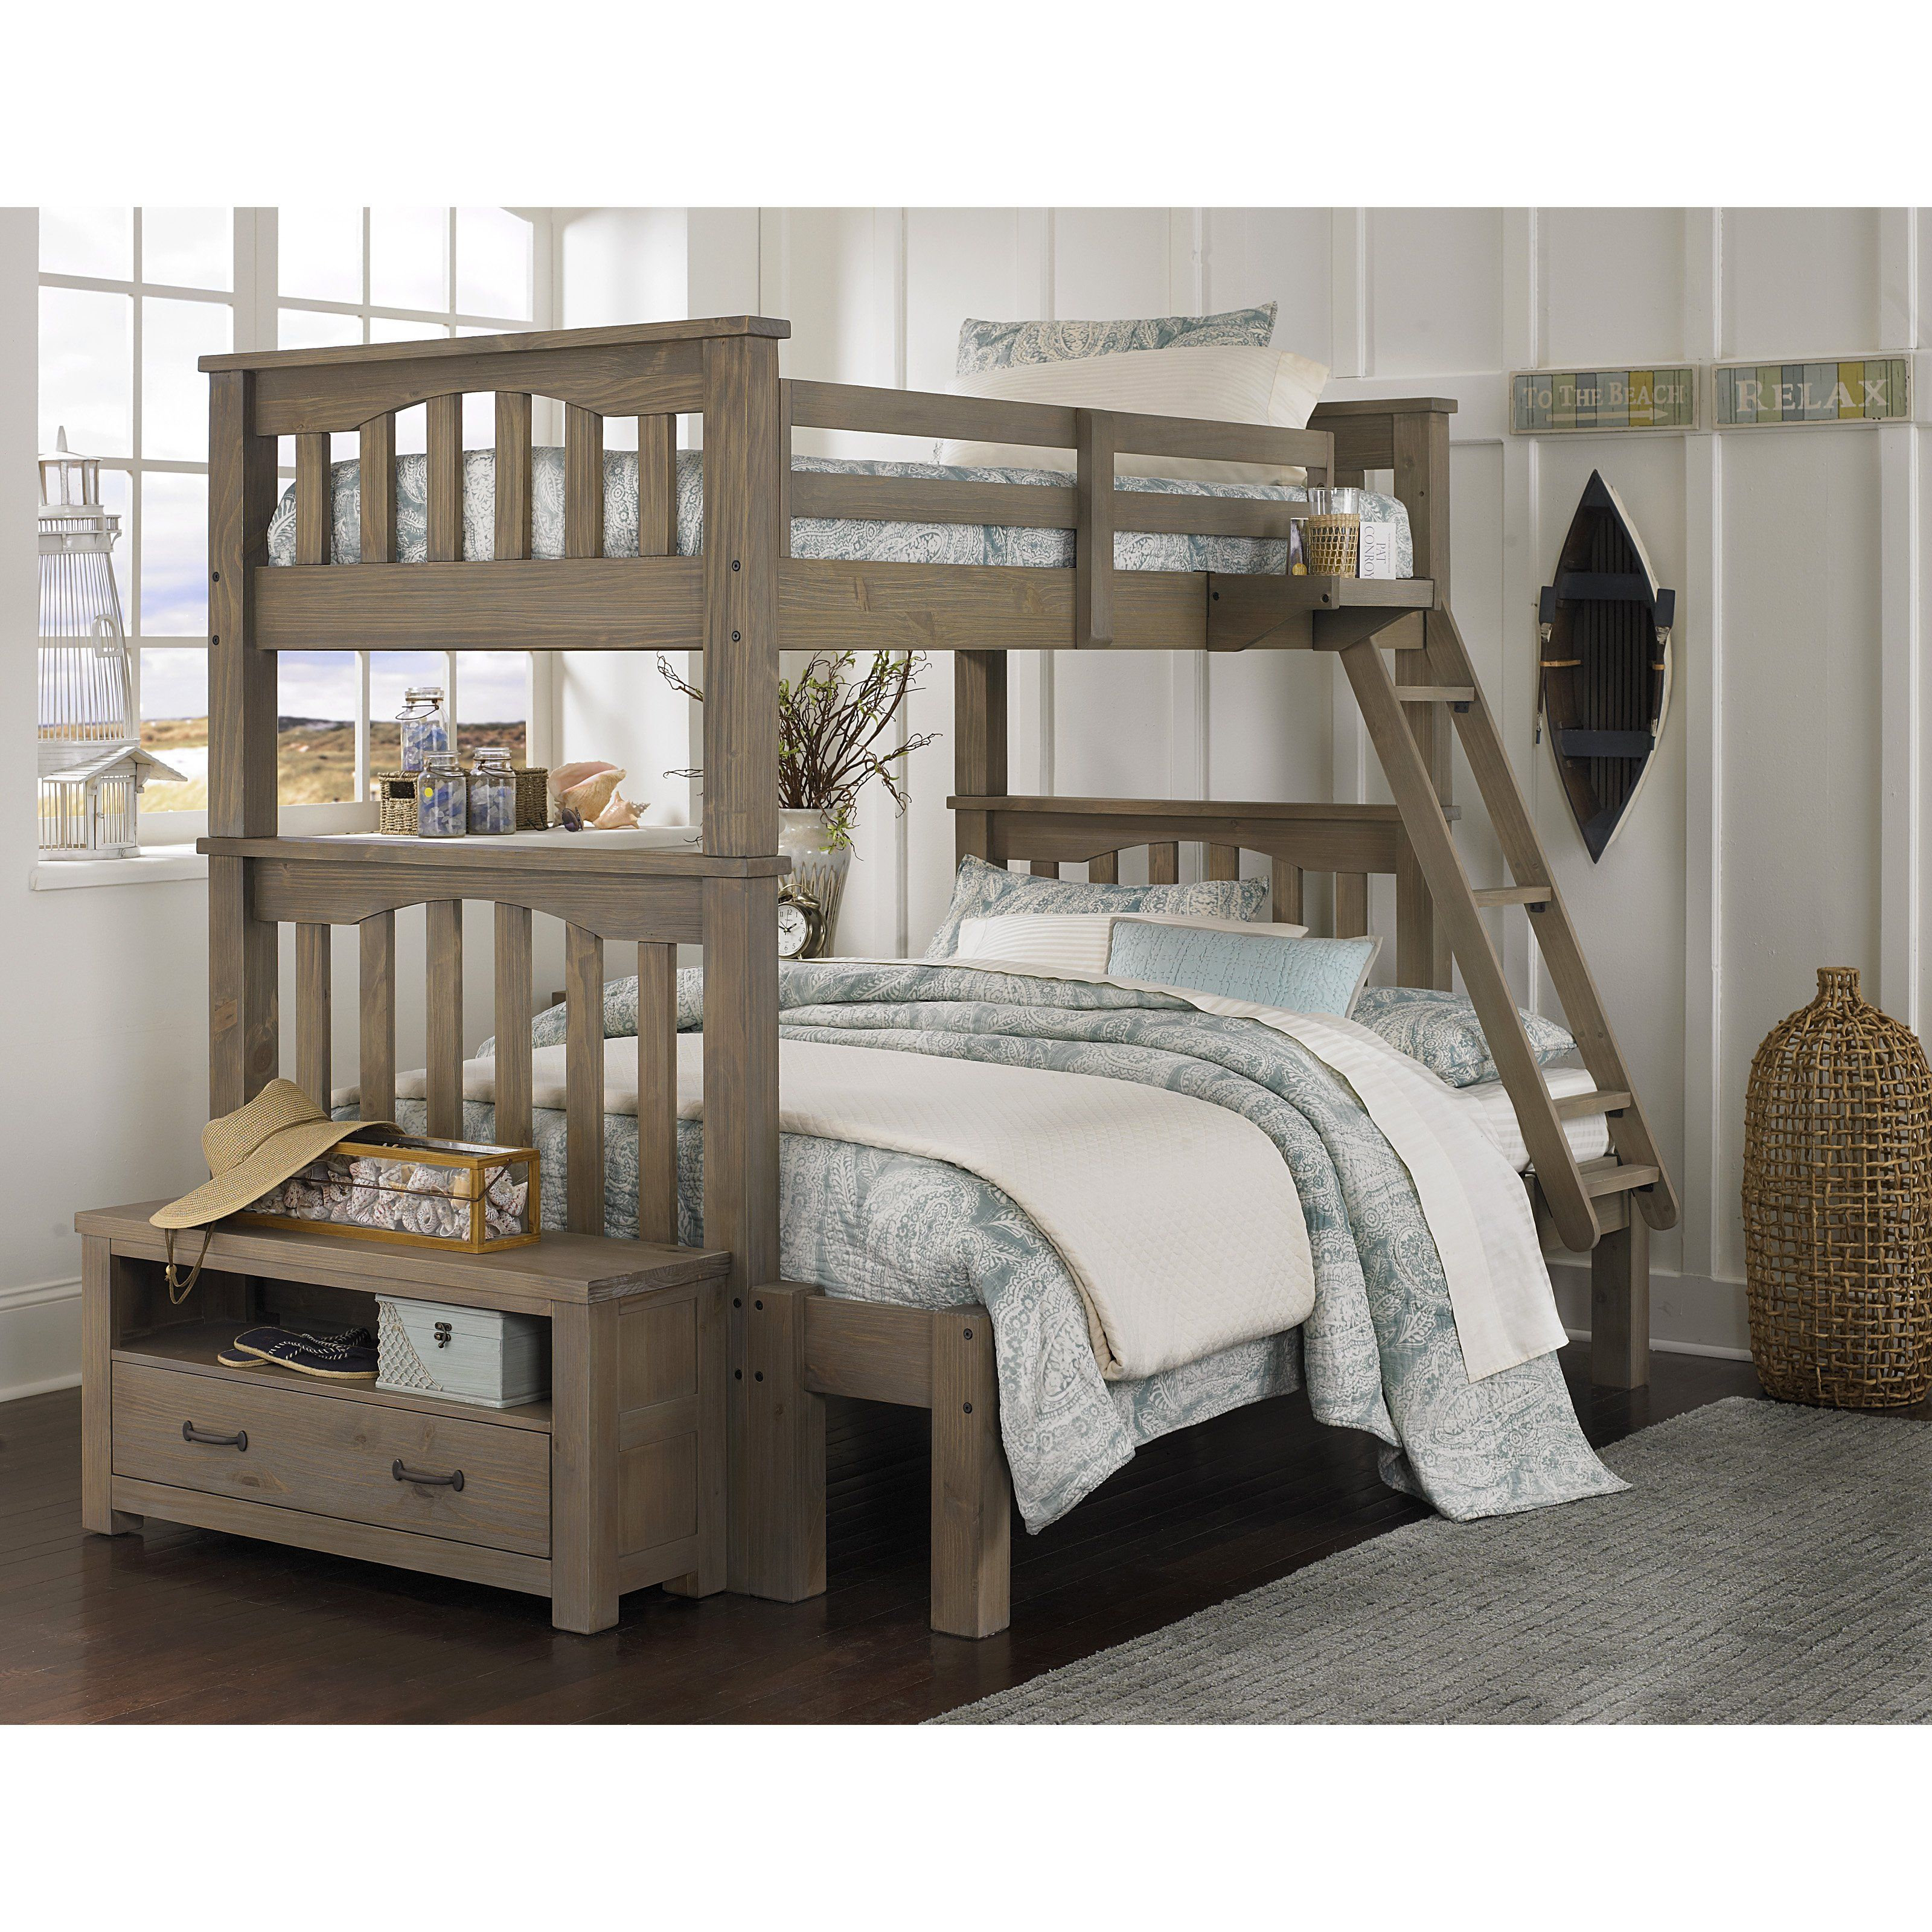 Tall loft bed with slide  Have to have it Highlands Harper Twin over Full Bunk Bed